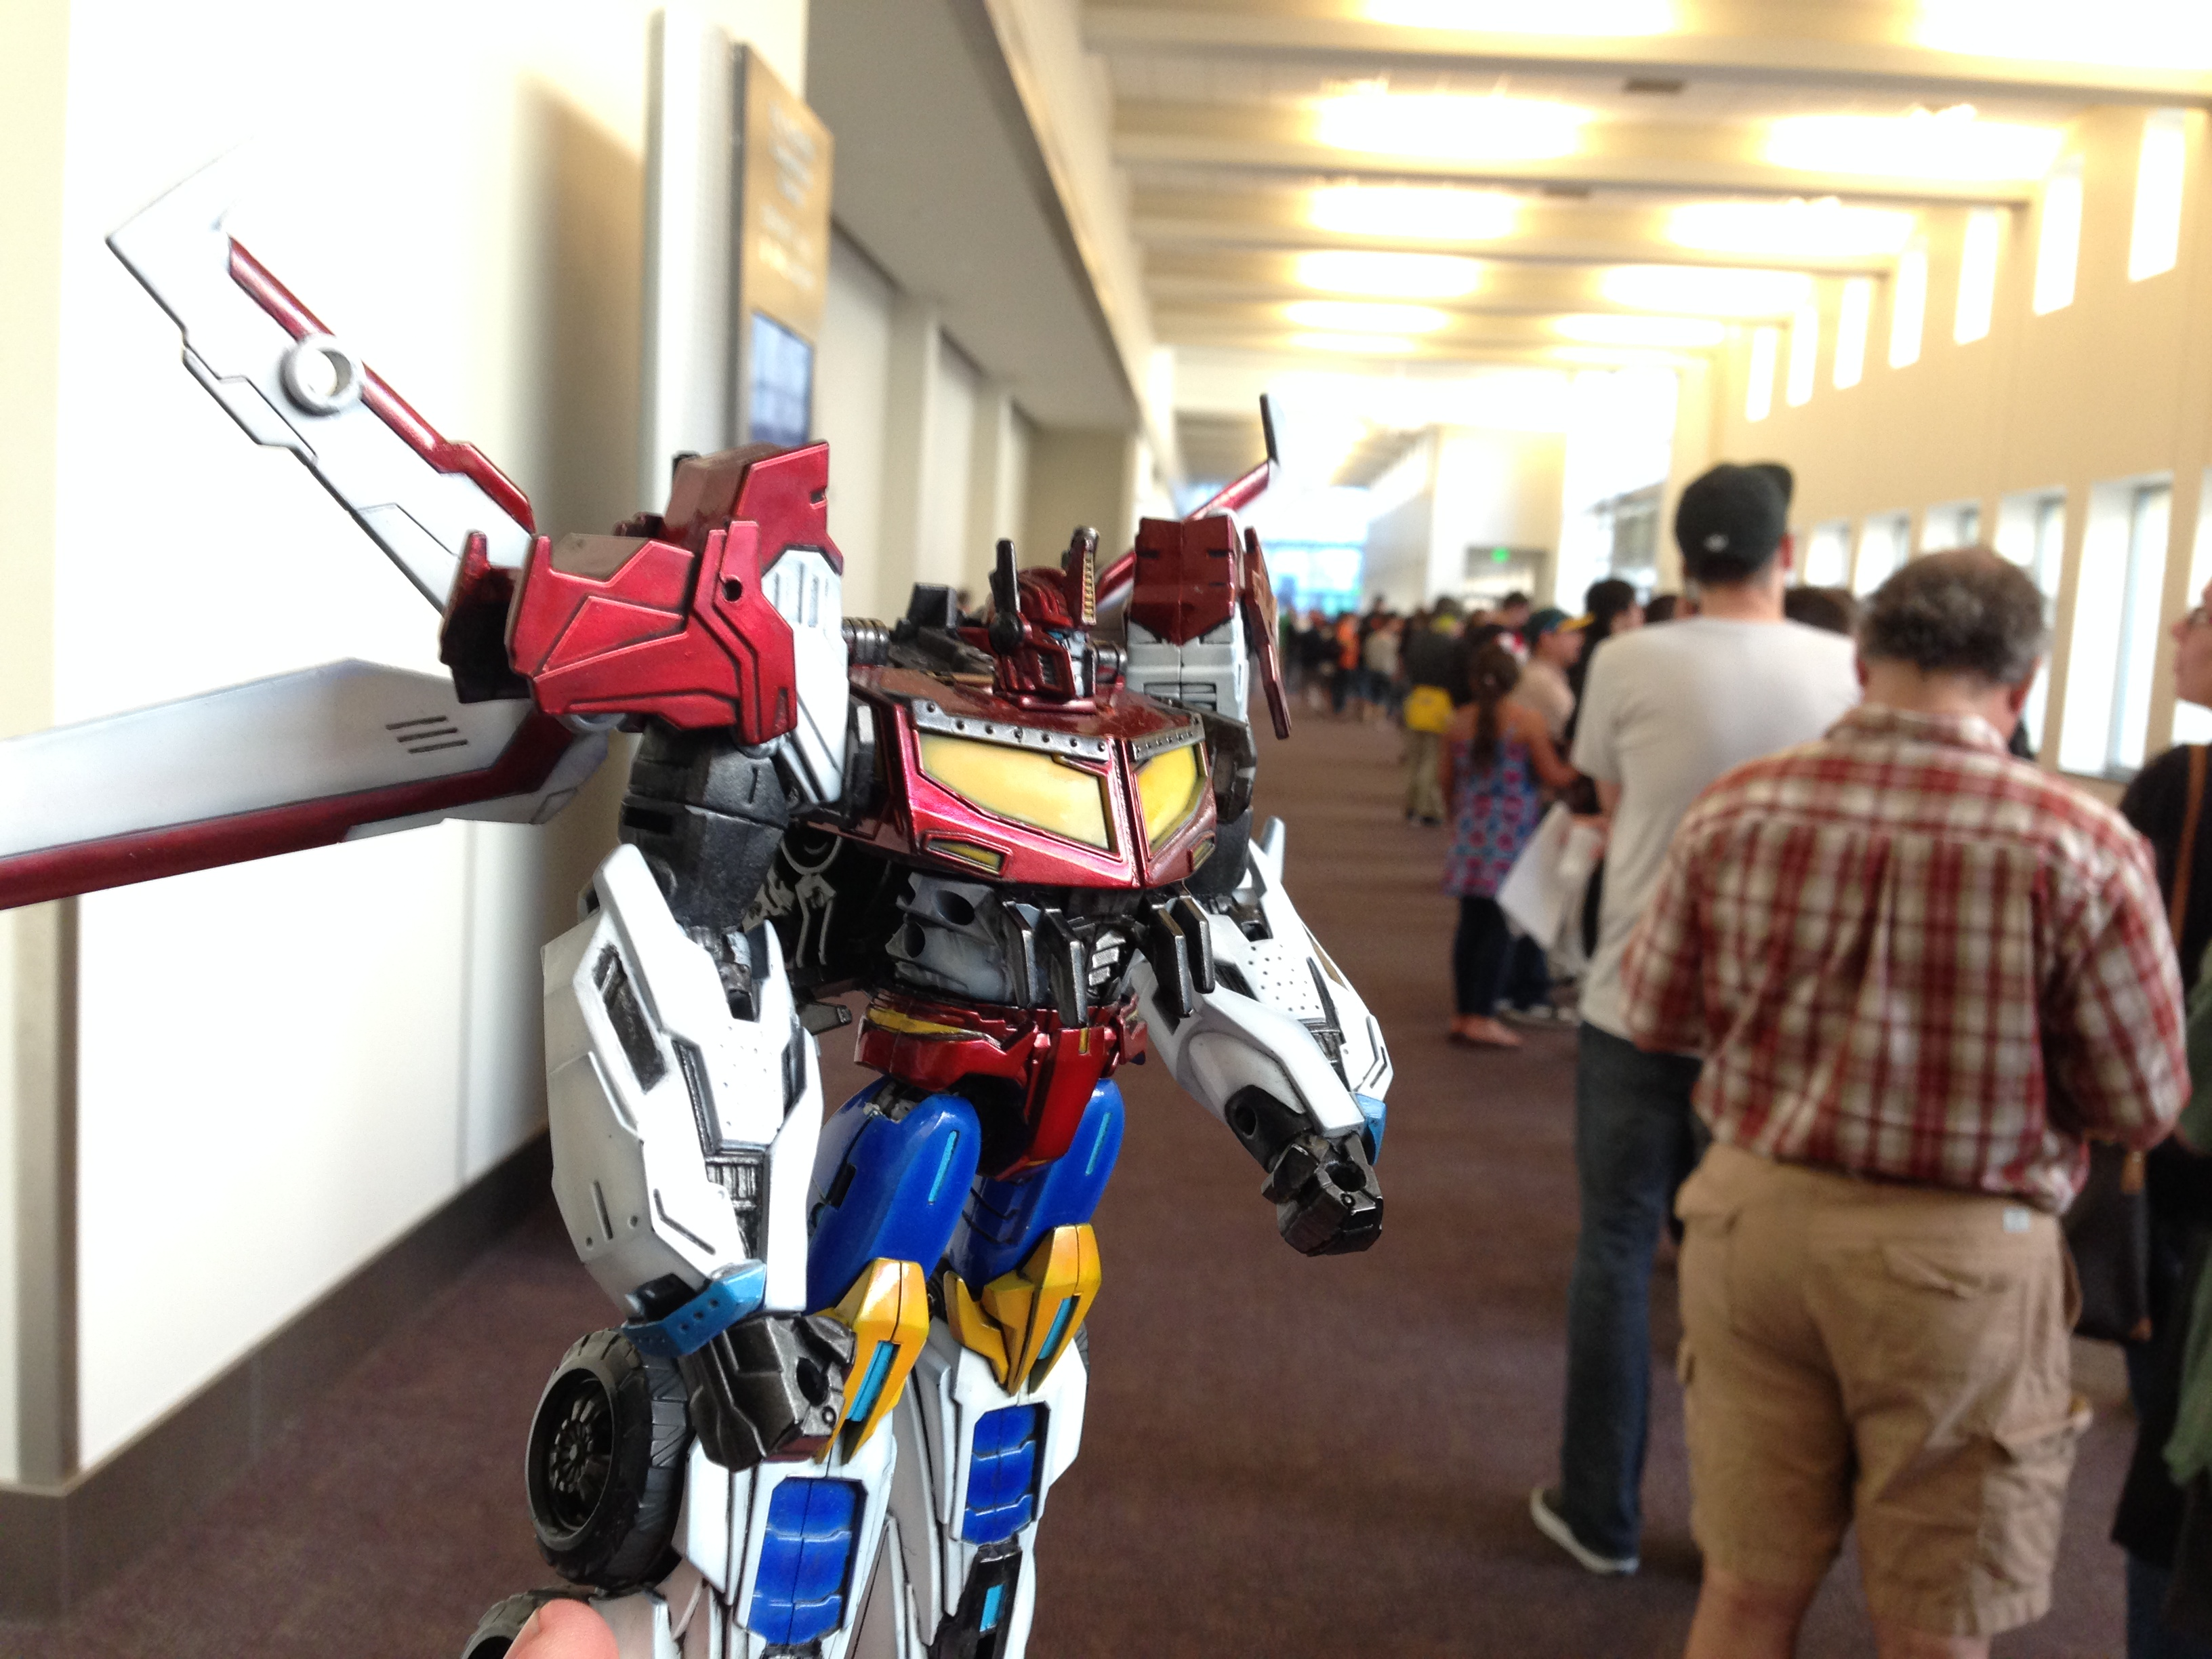 Victory Saber in the queue for the boxset. (Botcon Day 1)